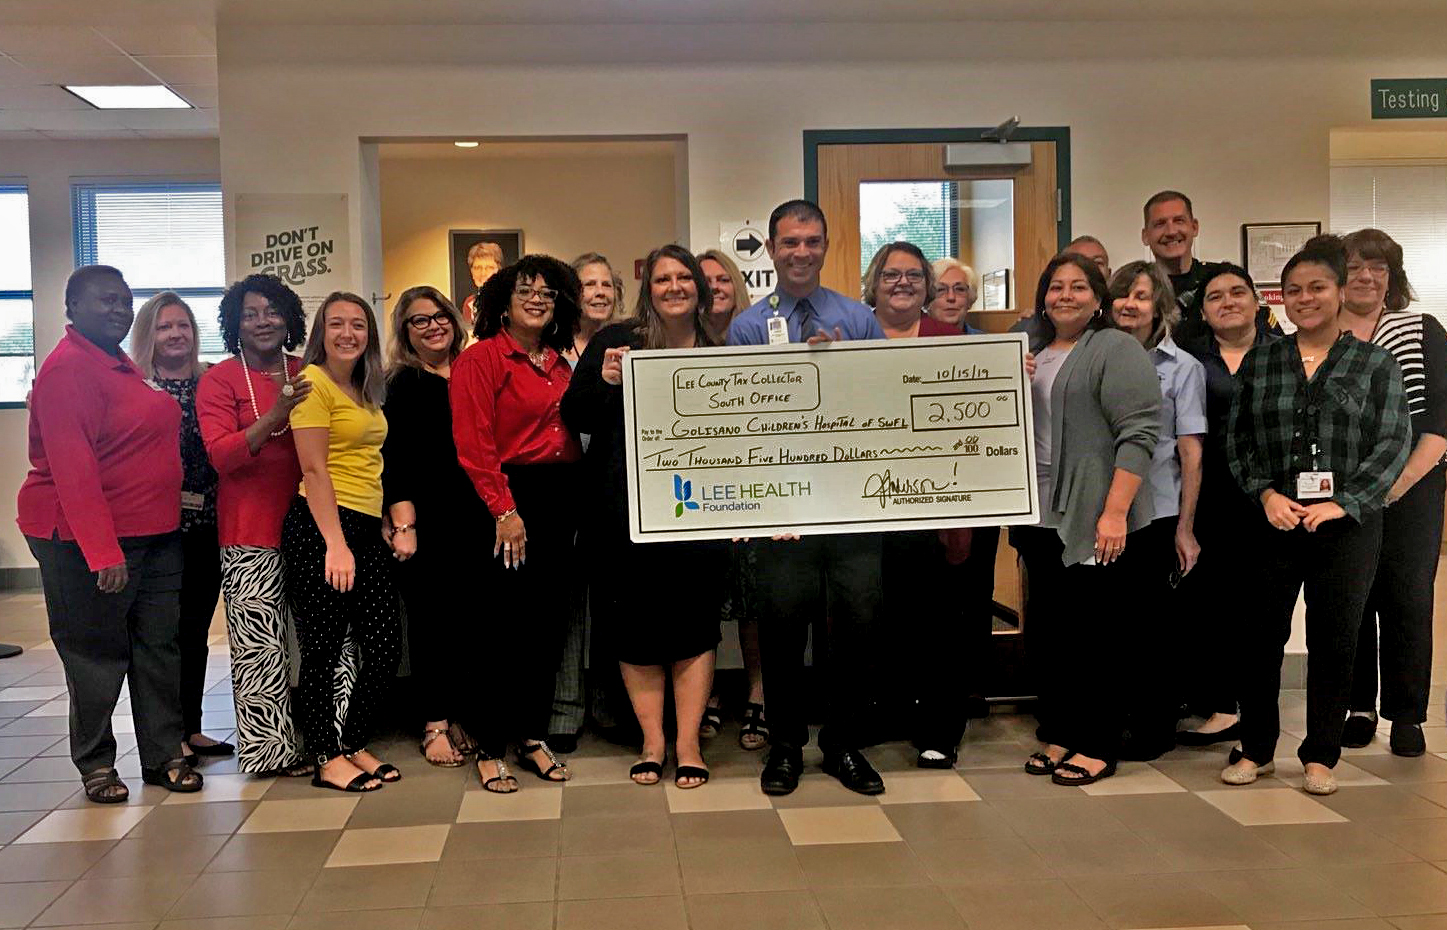 Lee County Tax Collector office raises money for Golisano